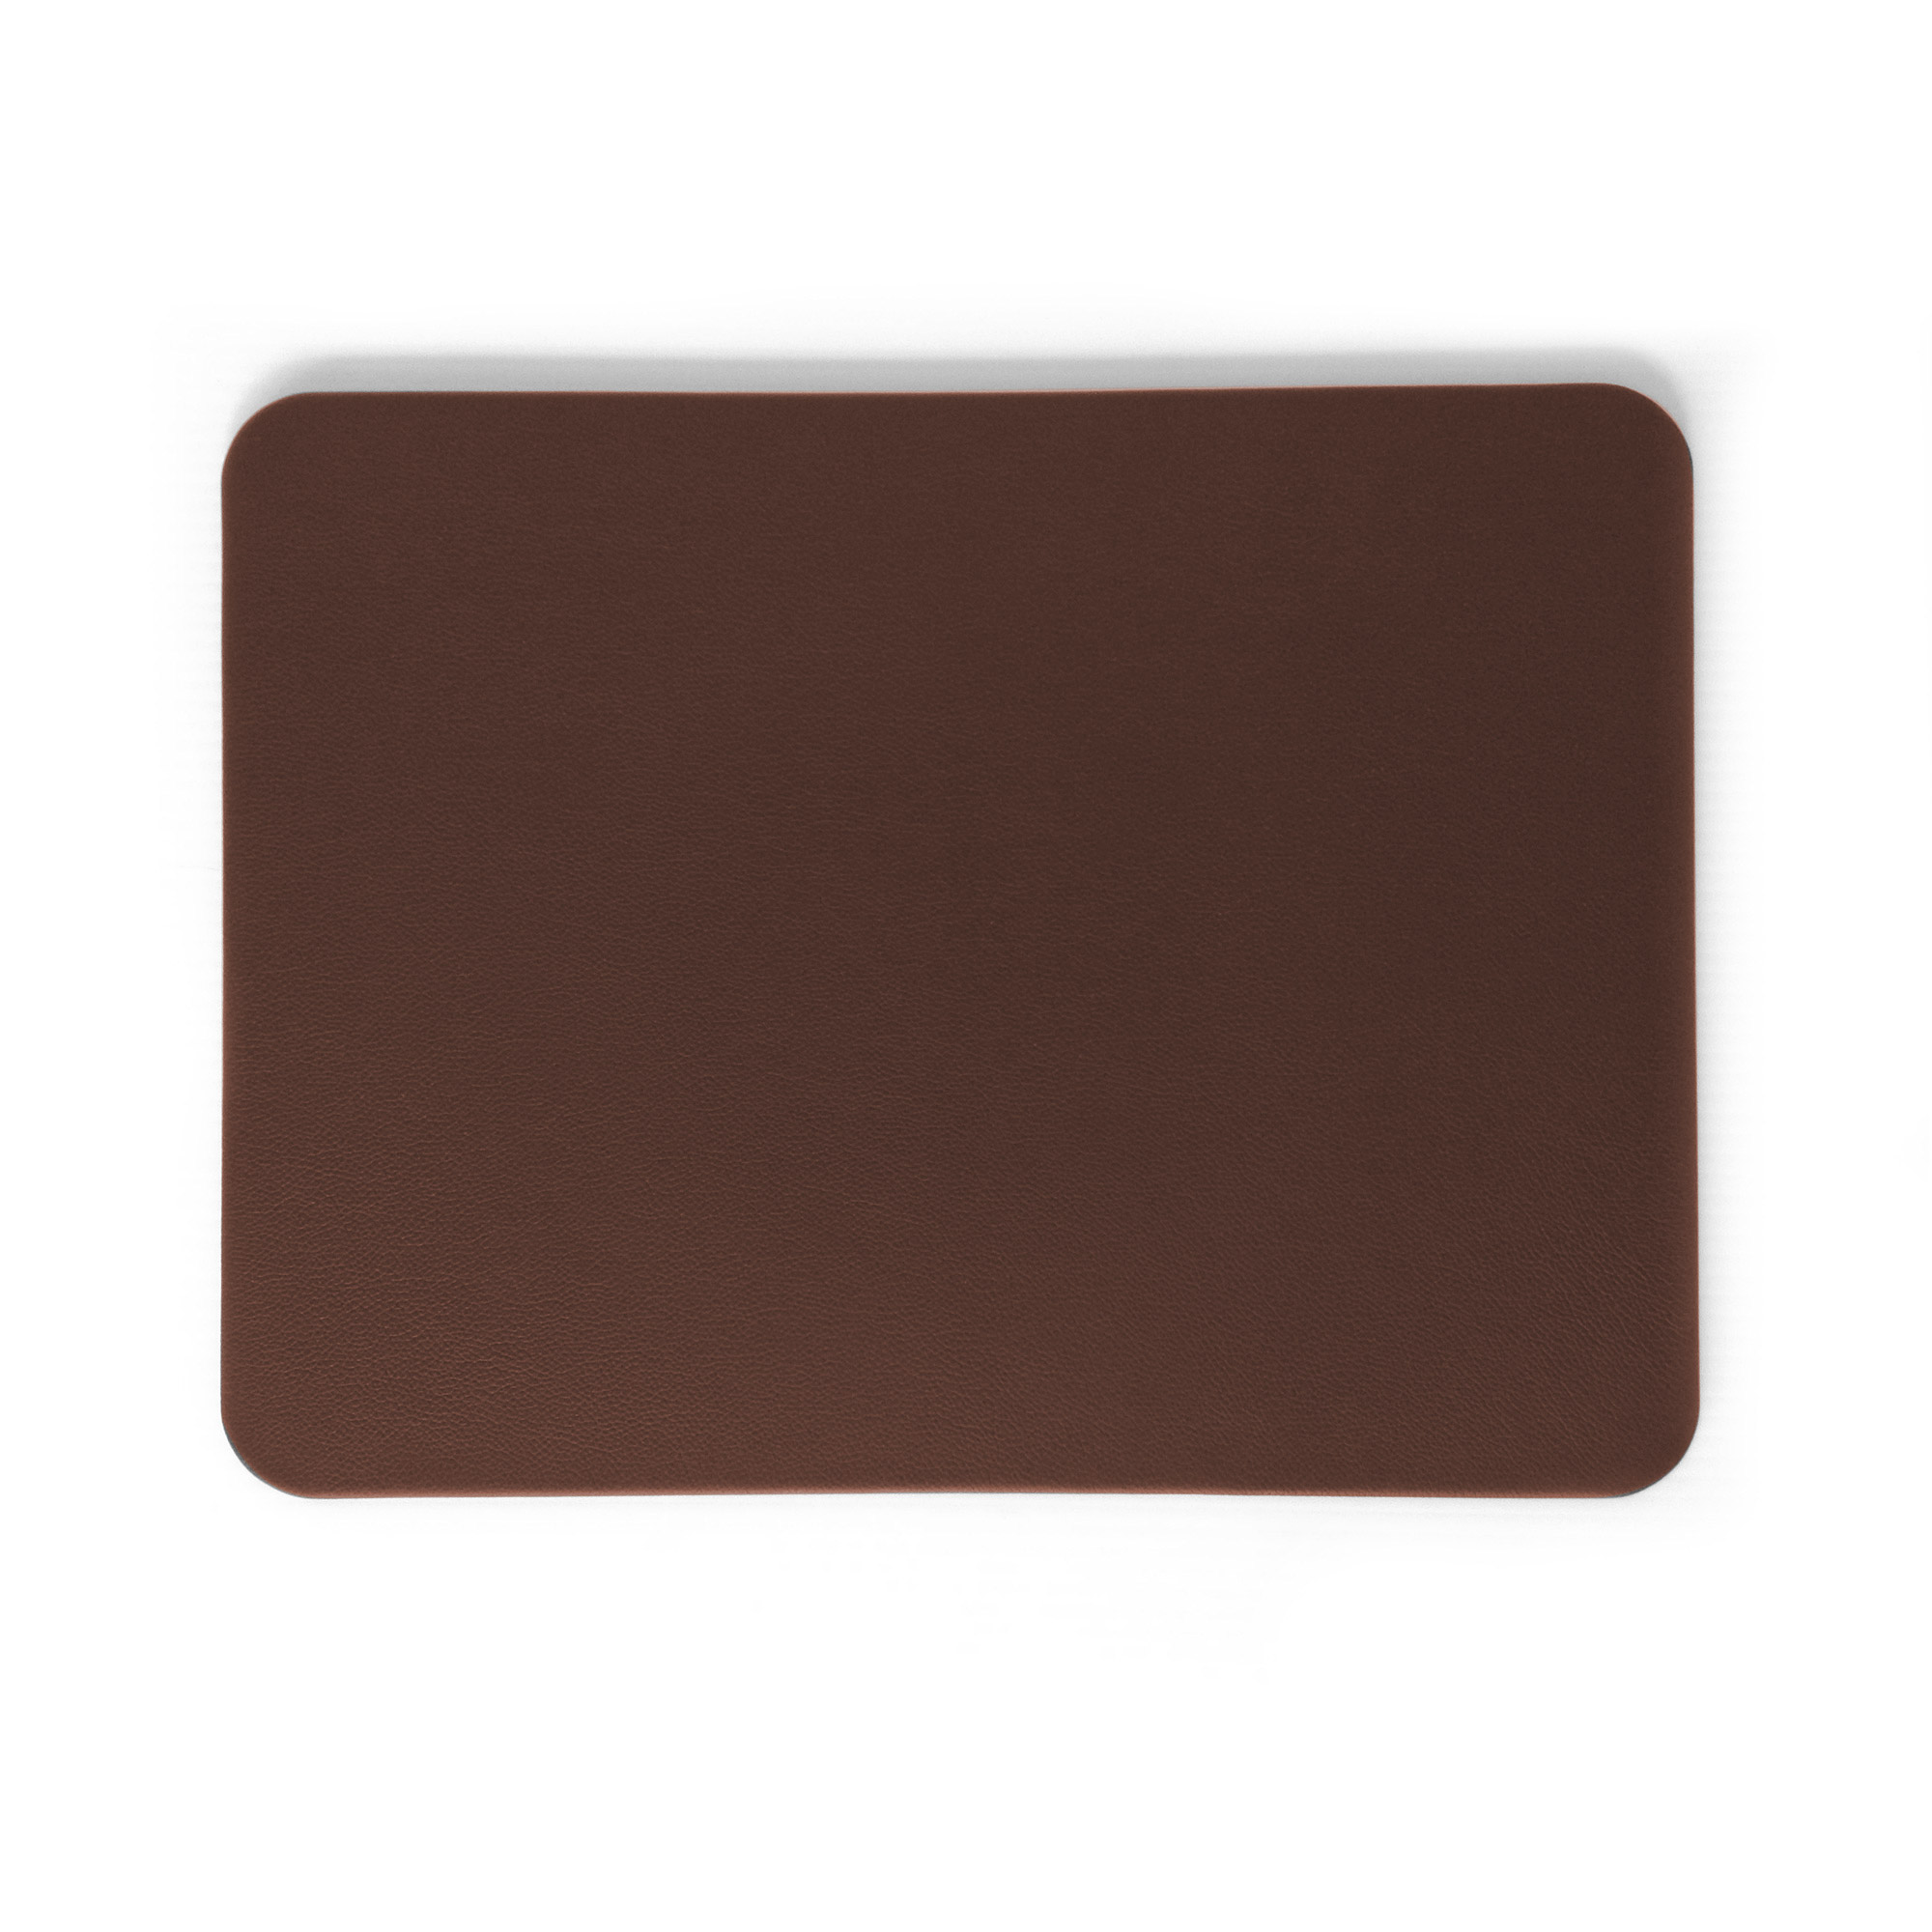 Chestnut Brown Leather Desk Blotter Pad Prestige Office